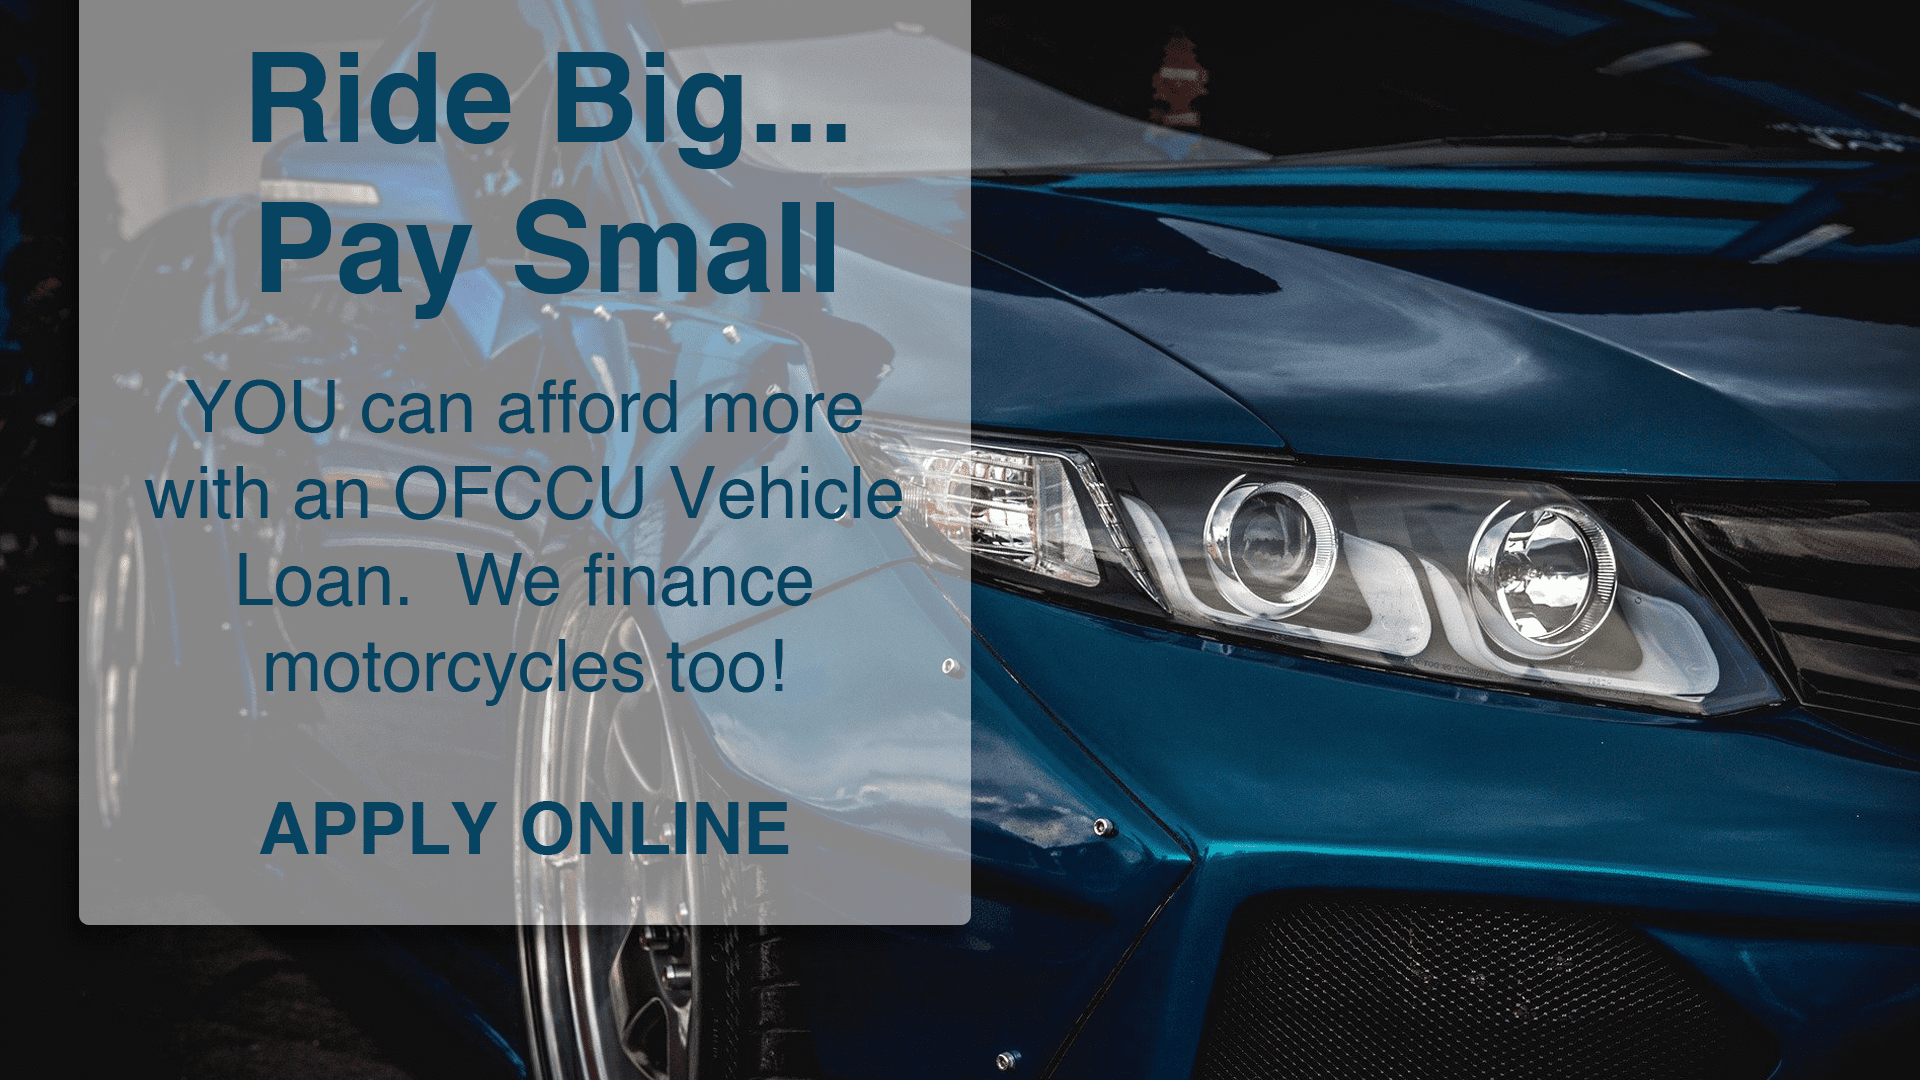 OFCCU Vehicle Loan advertisement with link to apply online.